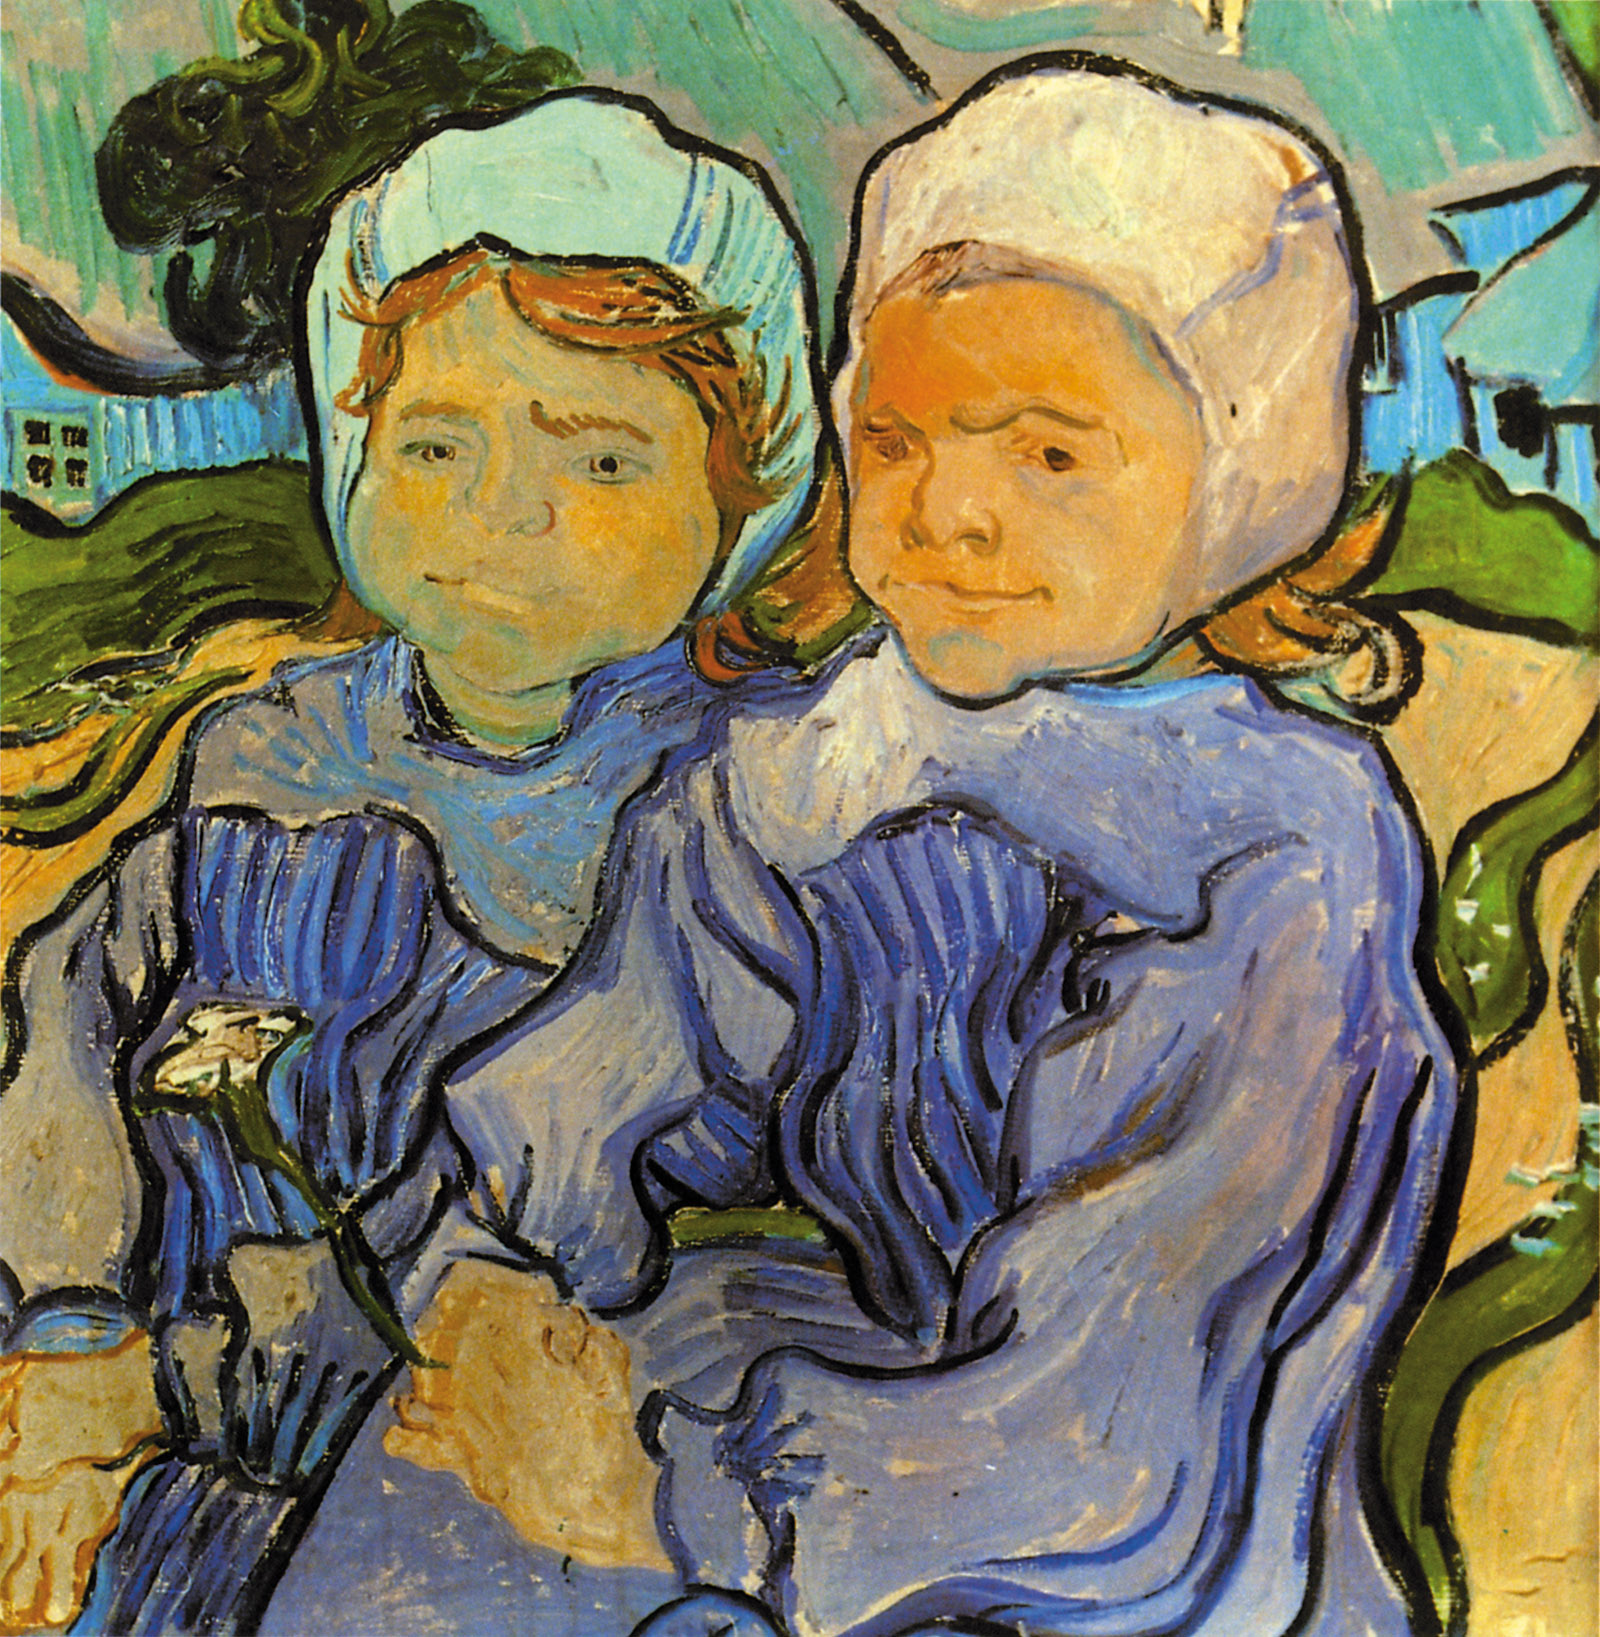 Vincent van Gogh's painting, Two Children